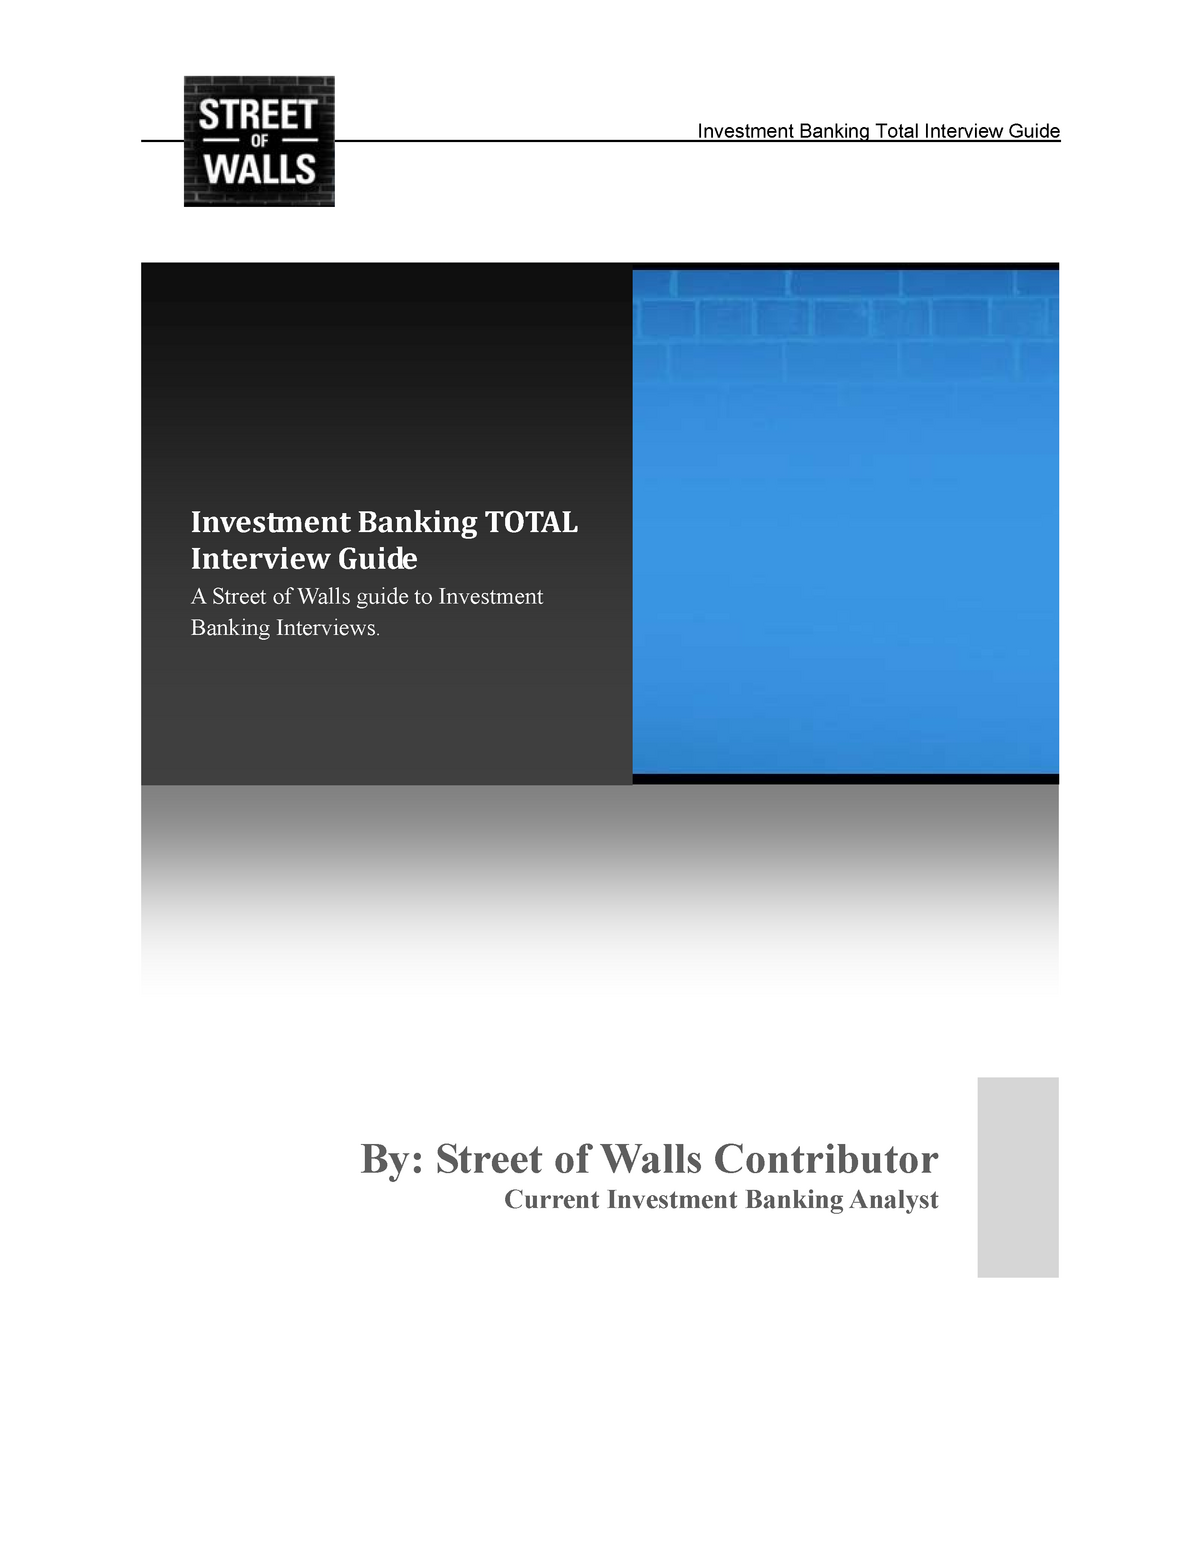 Streets of Wall- IB Interview Guide - MGT 401: Strategic